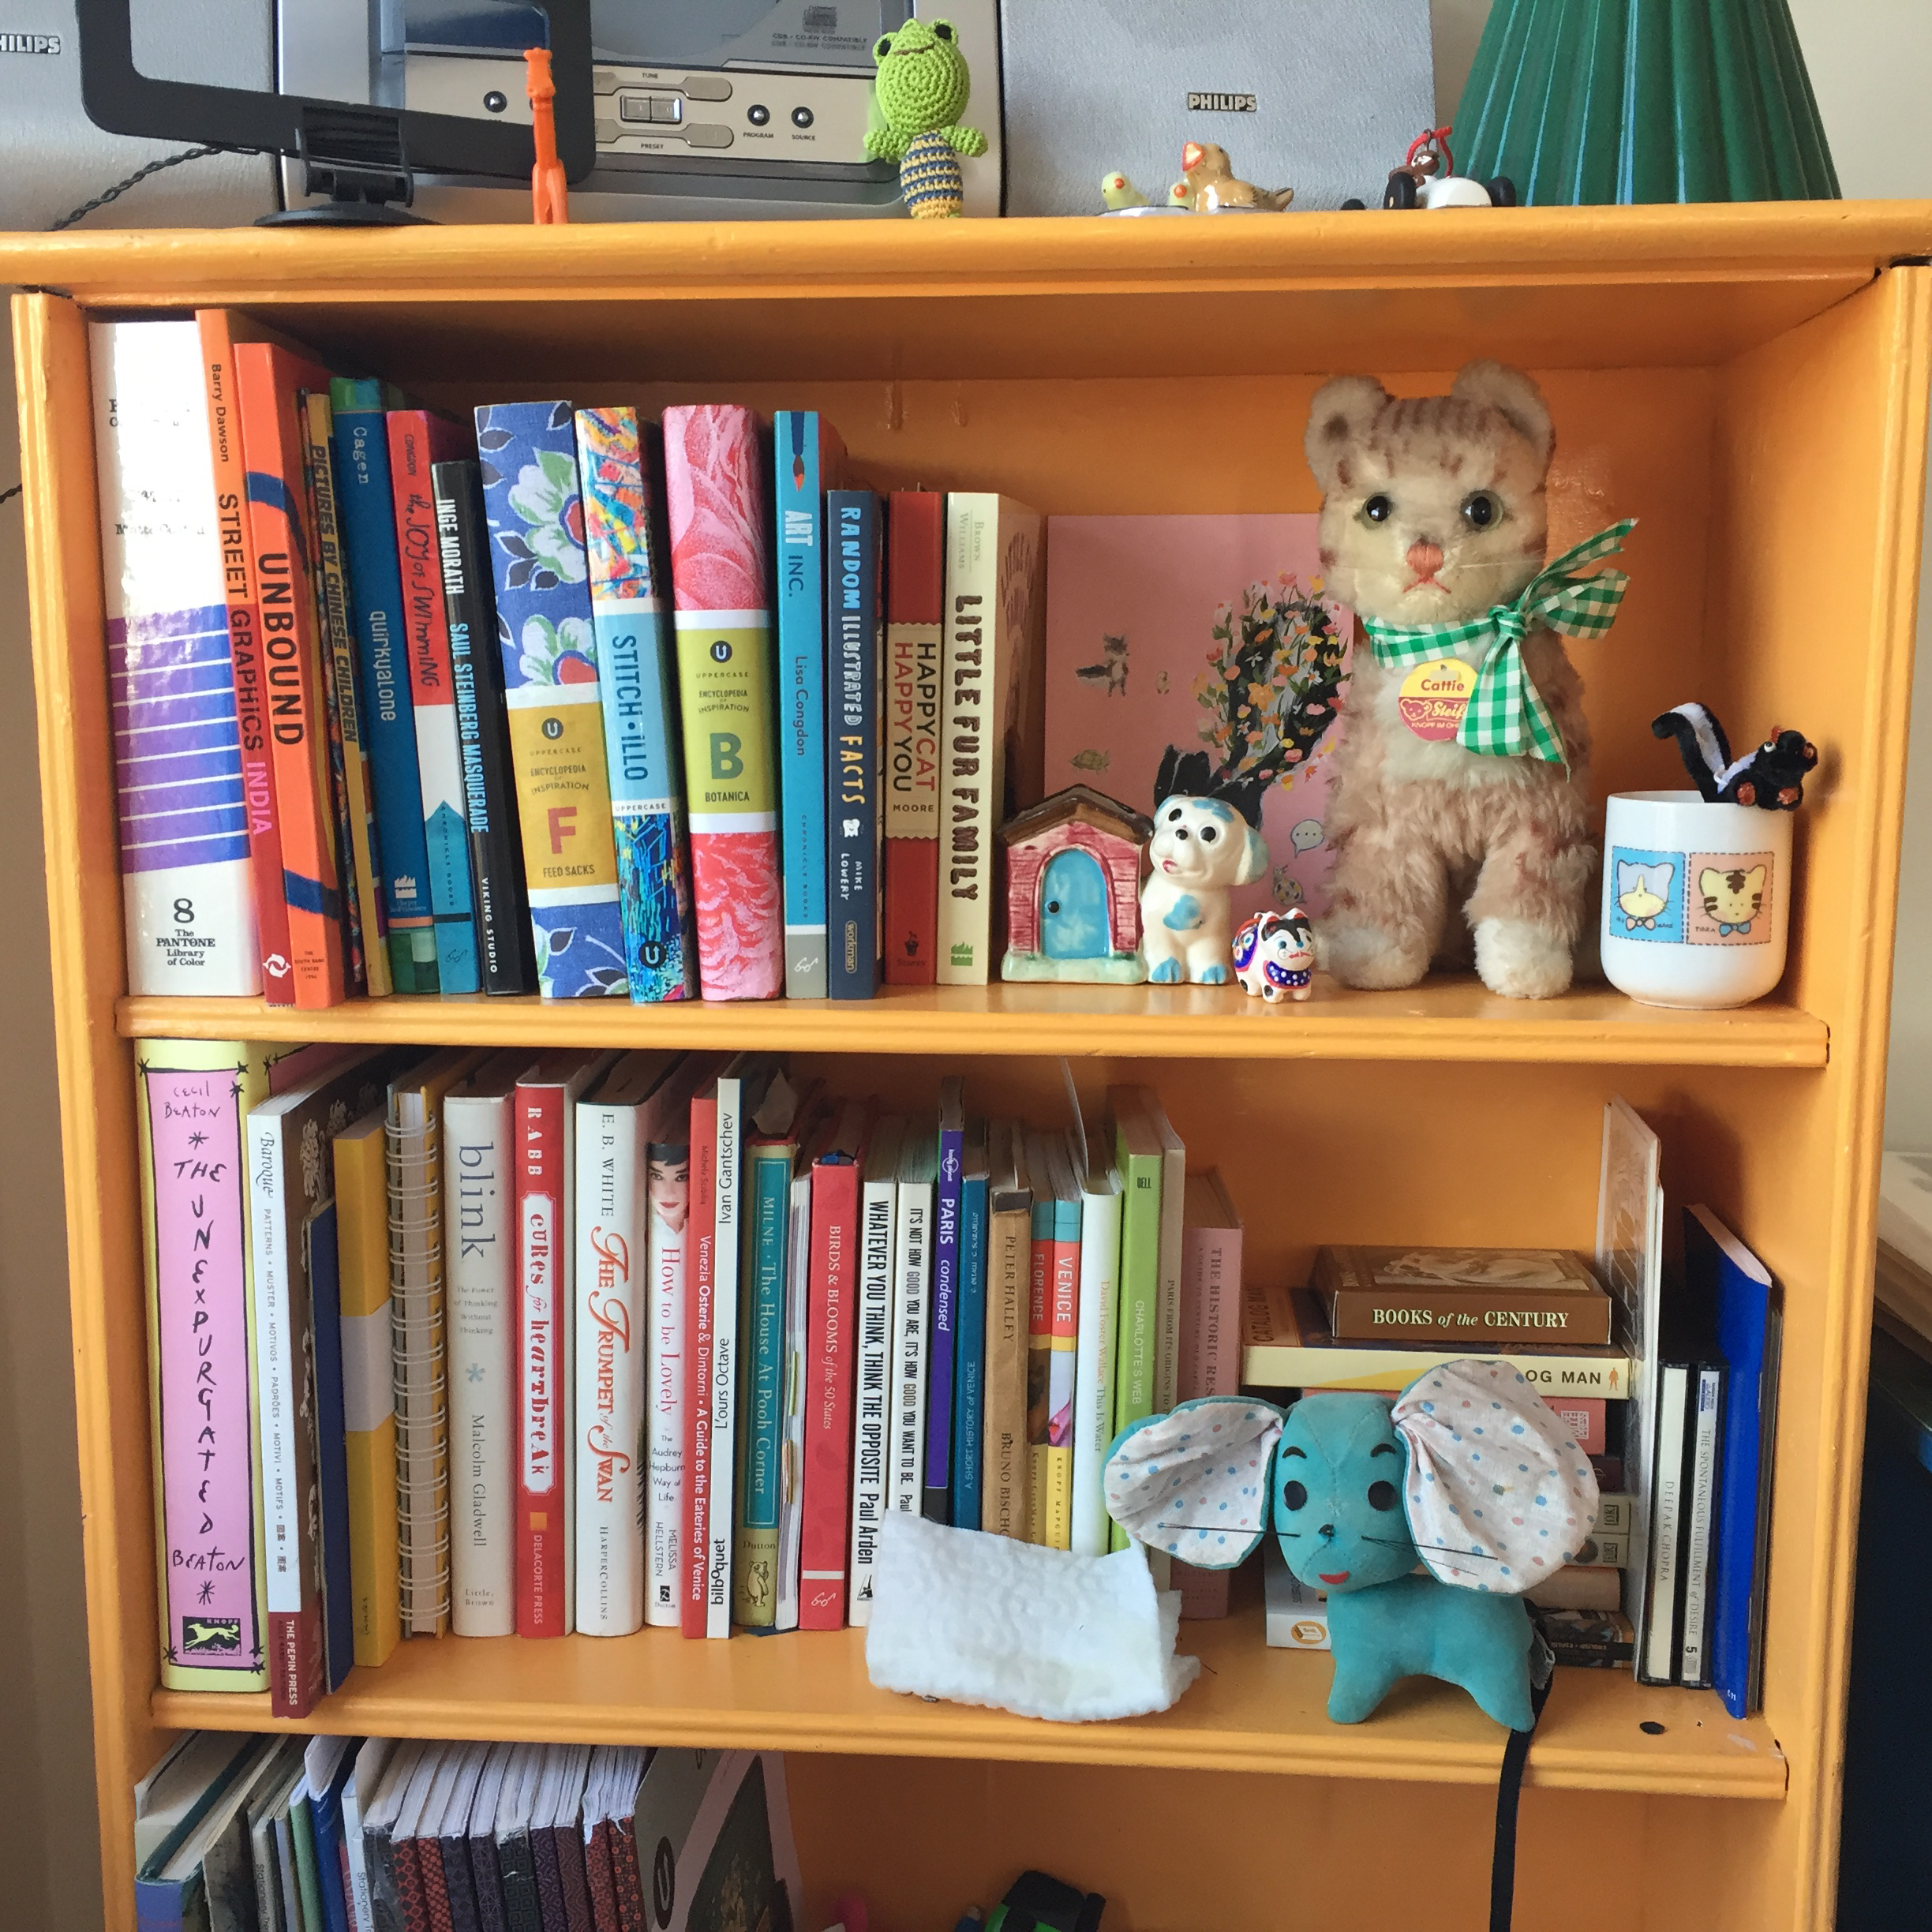 Allyn_H_orge shelves.jpg